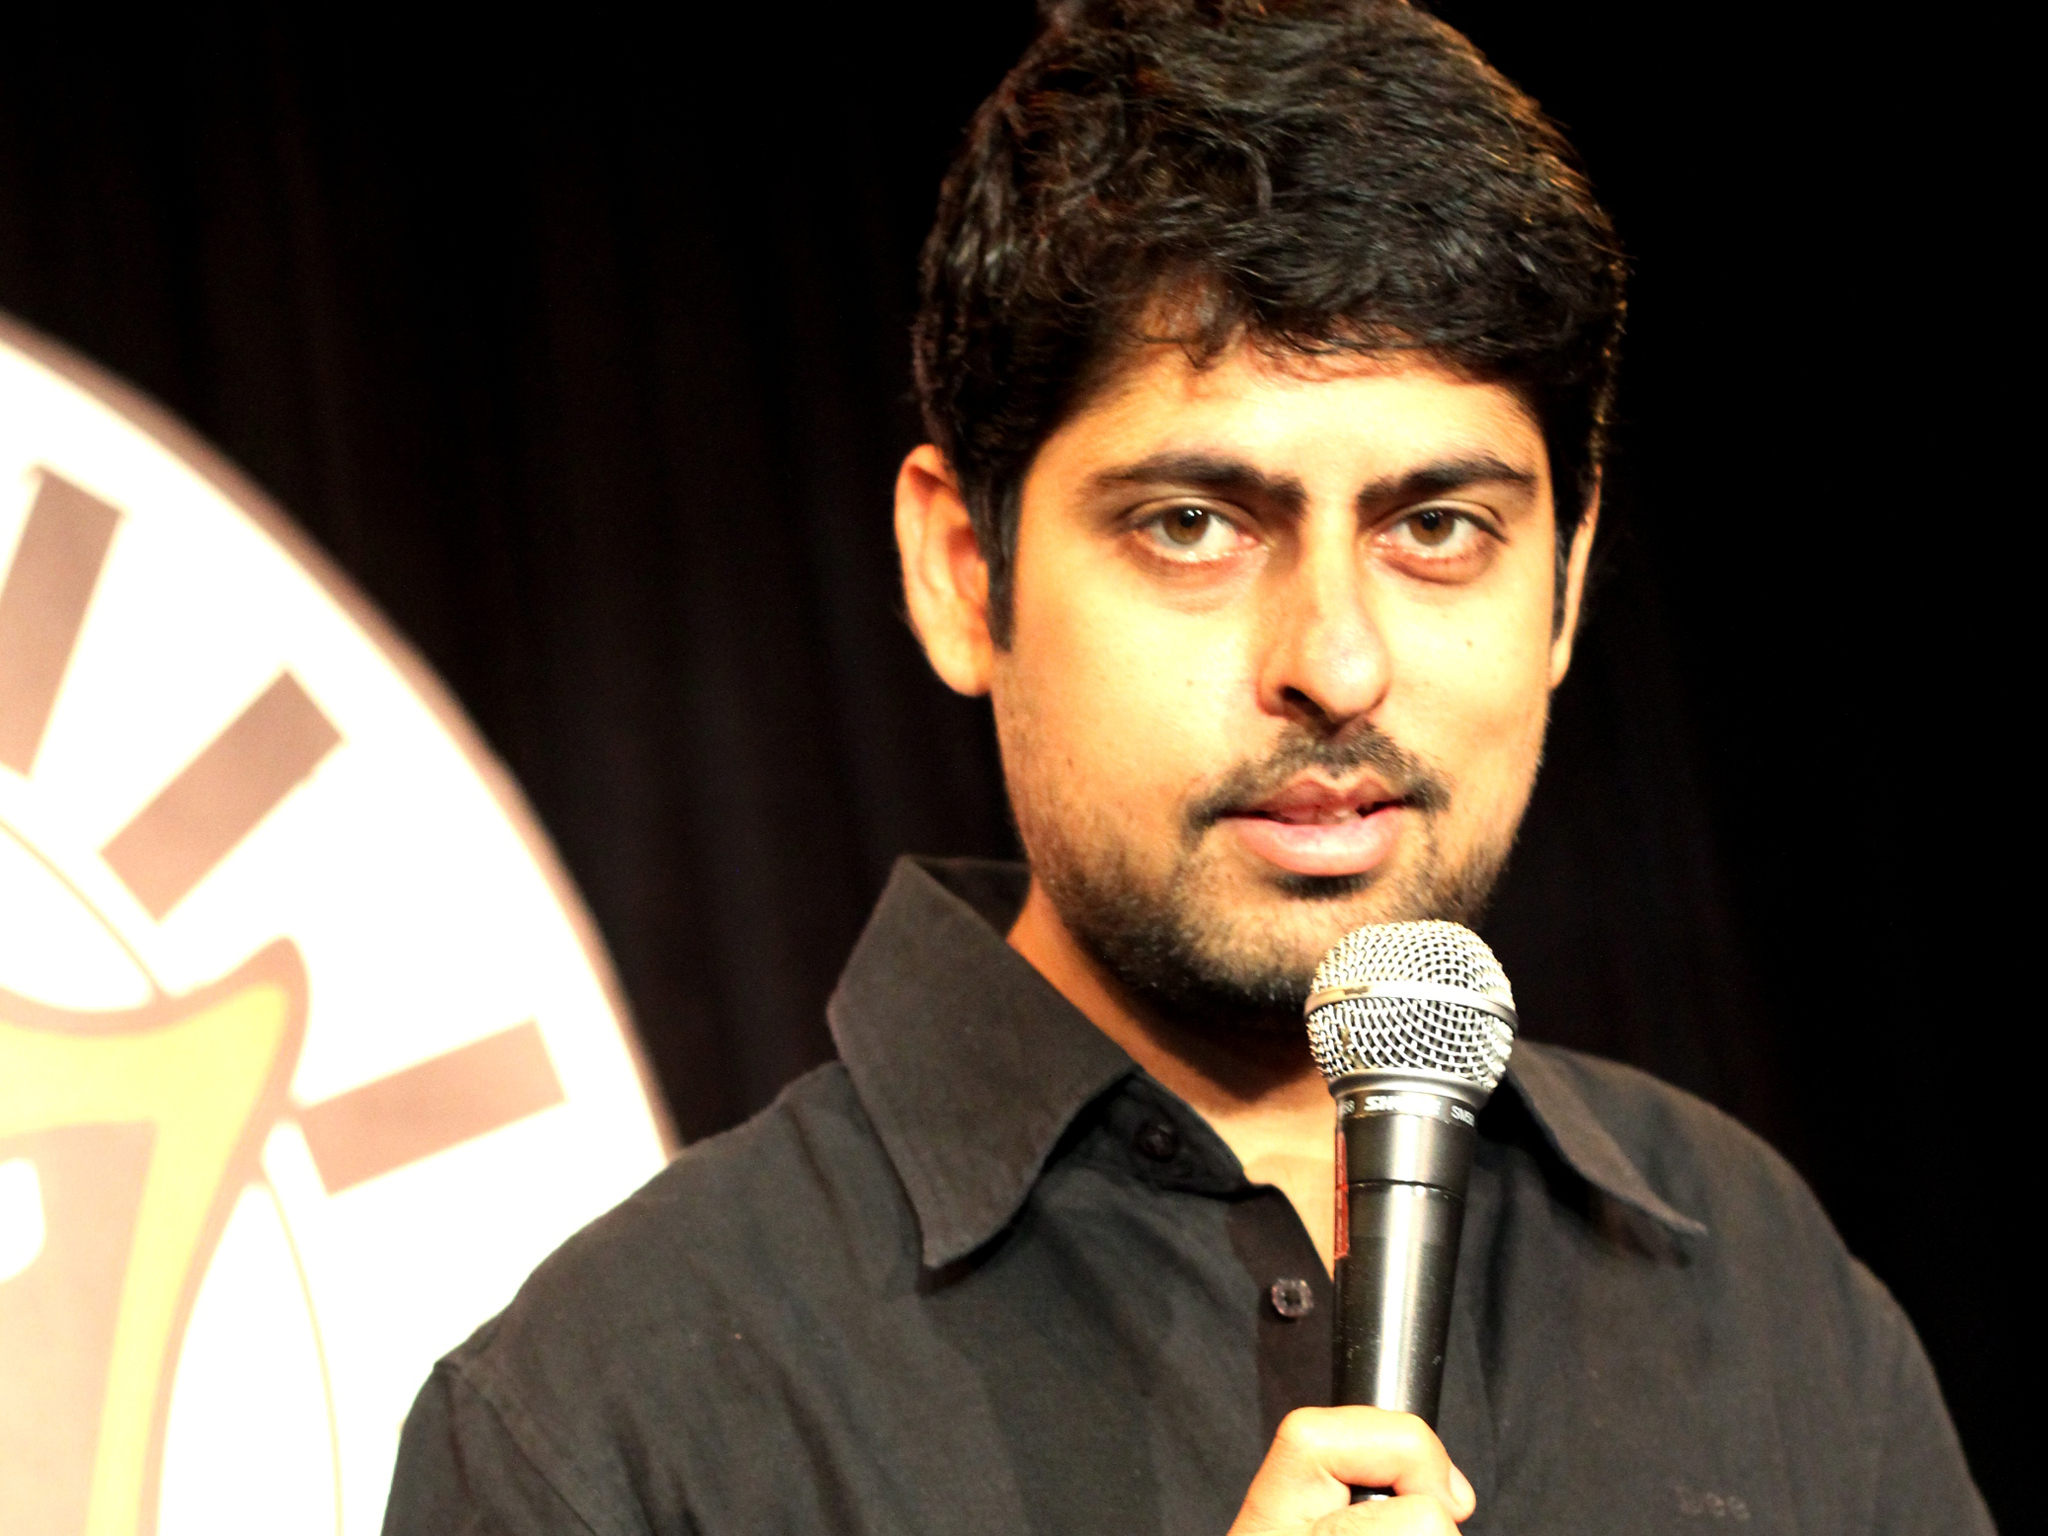 The 100 best Bollywood movies, Varun Grover